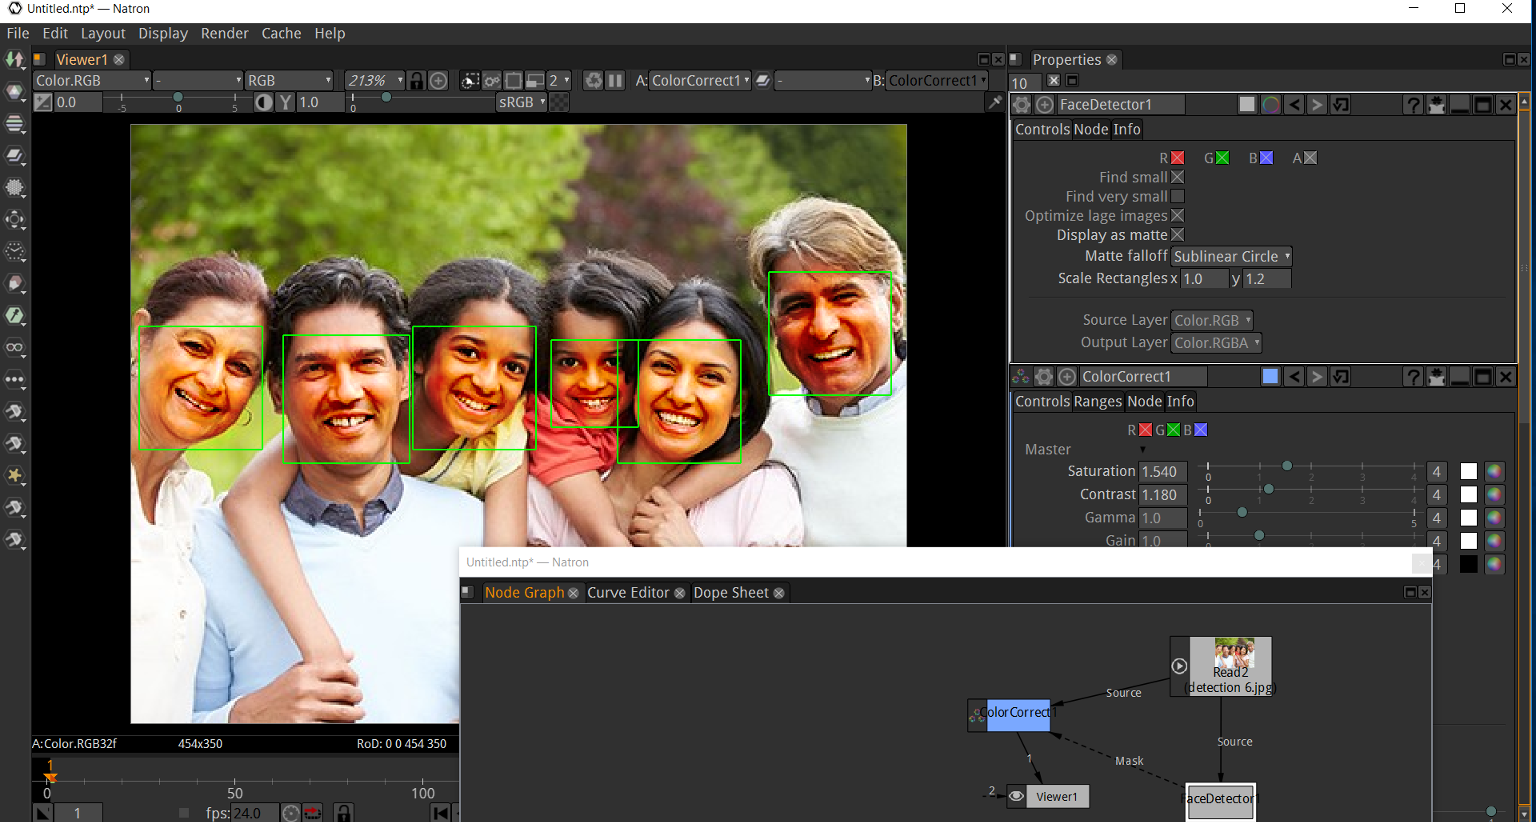 Mutiny Facedetector as OpenFX Plug-in